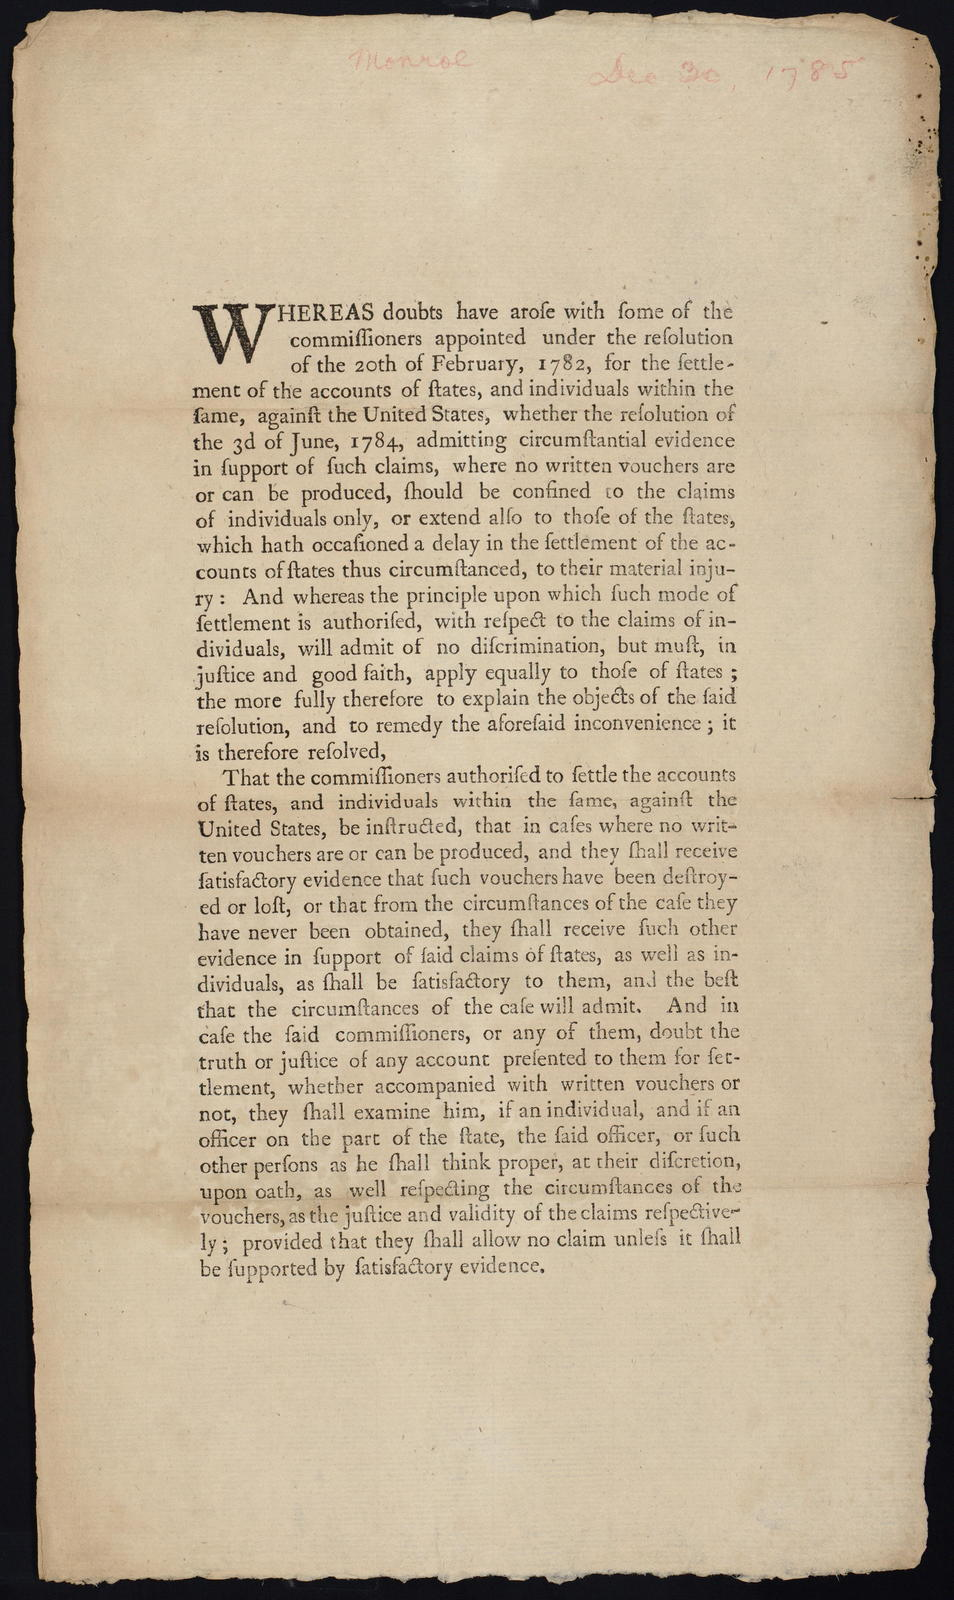 Whereas doubts have arose with some of the commissioners appointed under the resolution of the 20th of February, 1782, for the settlement of the accounts of states, and individuals within the same, against the United States ...